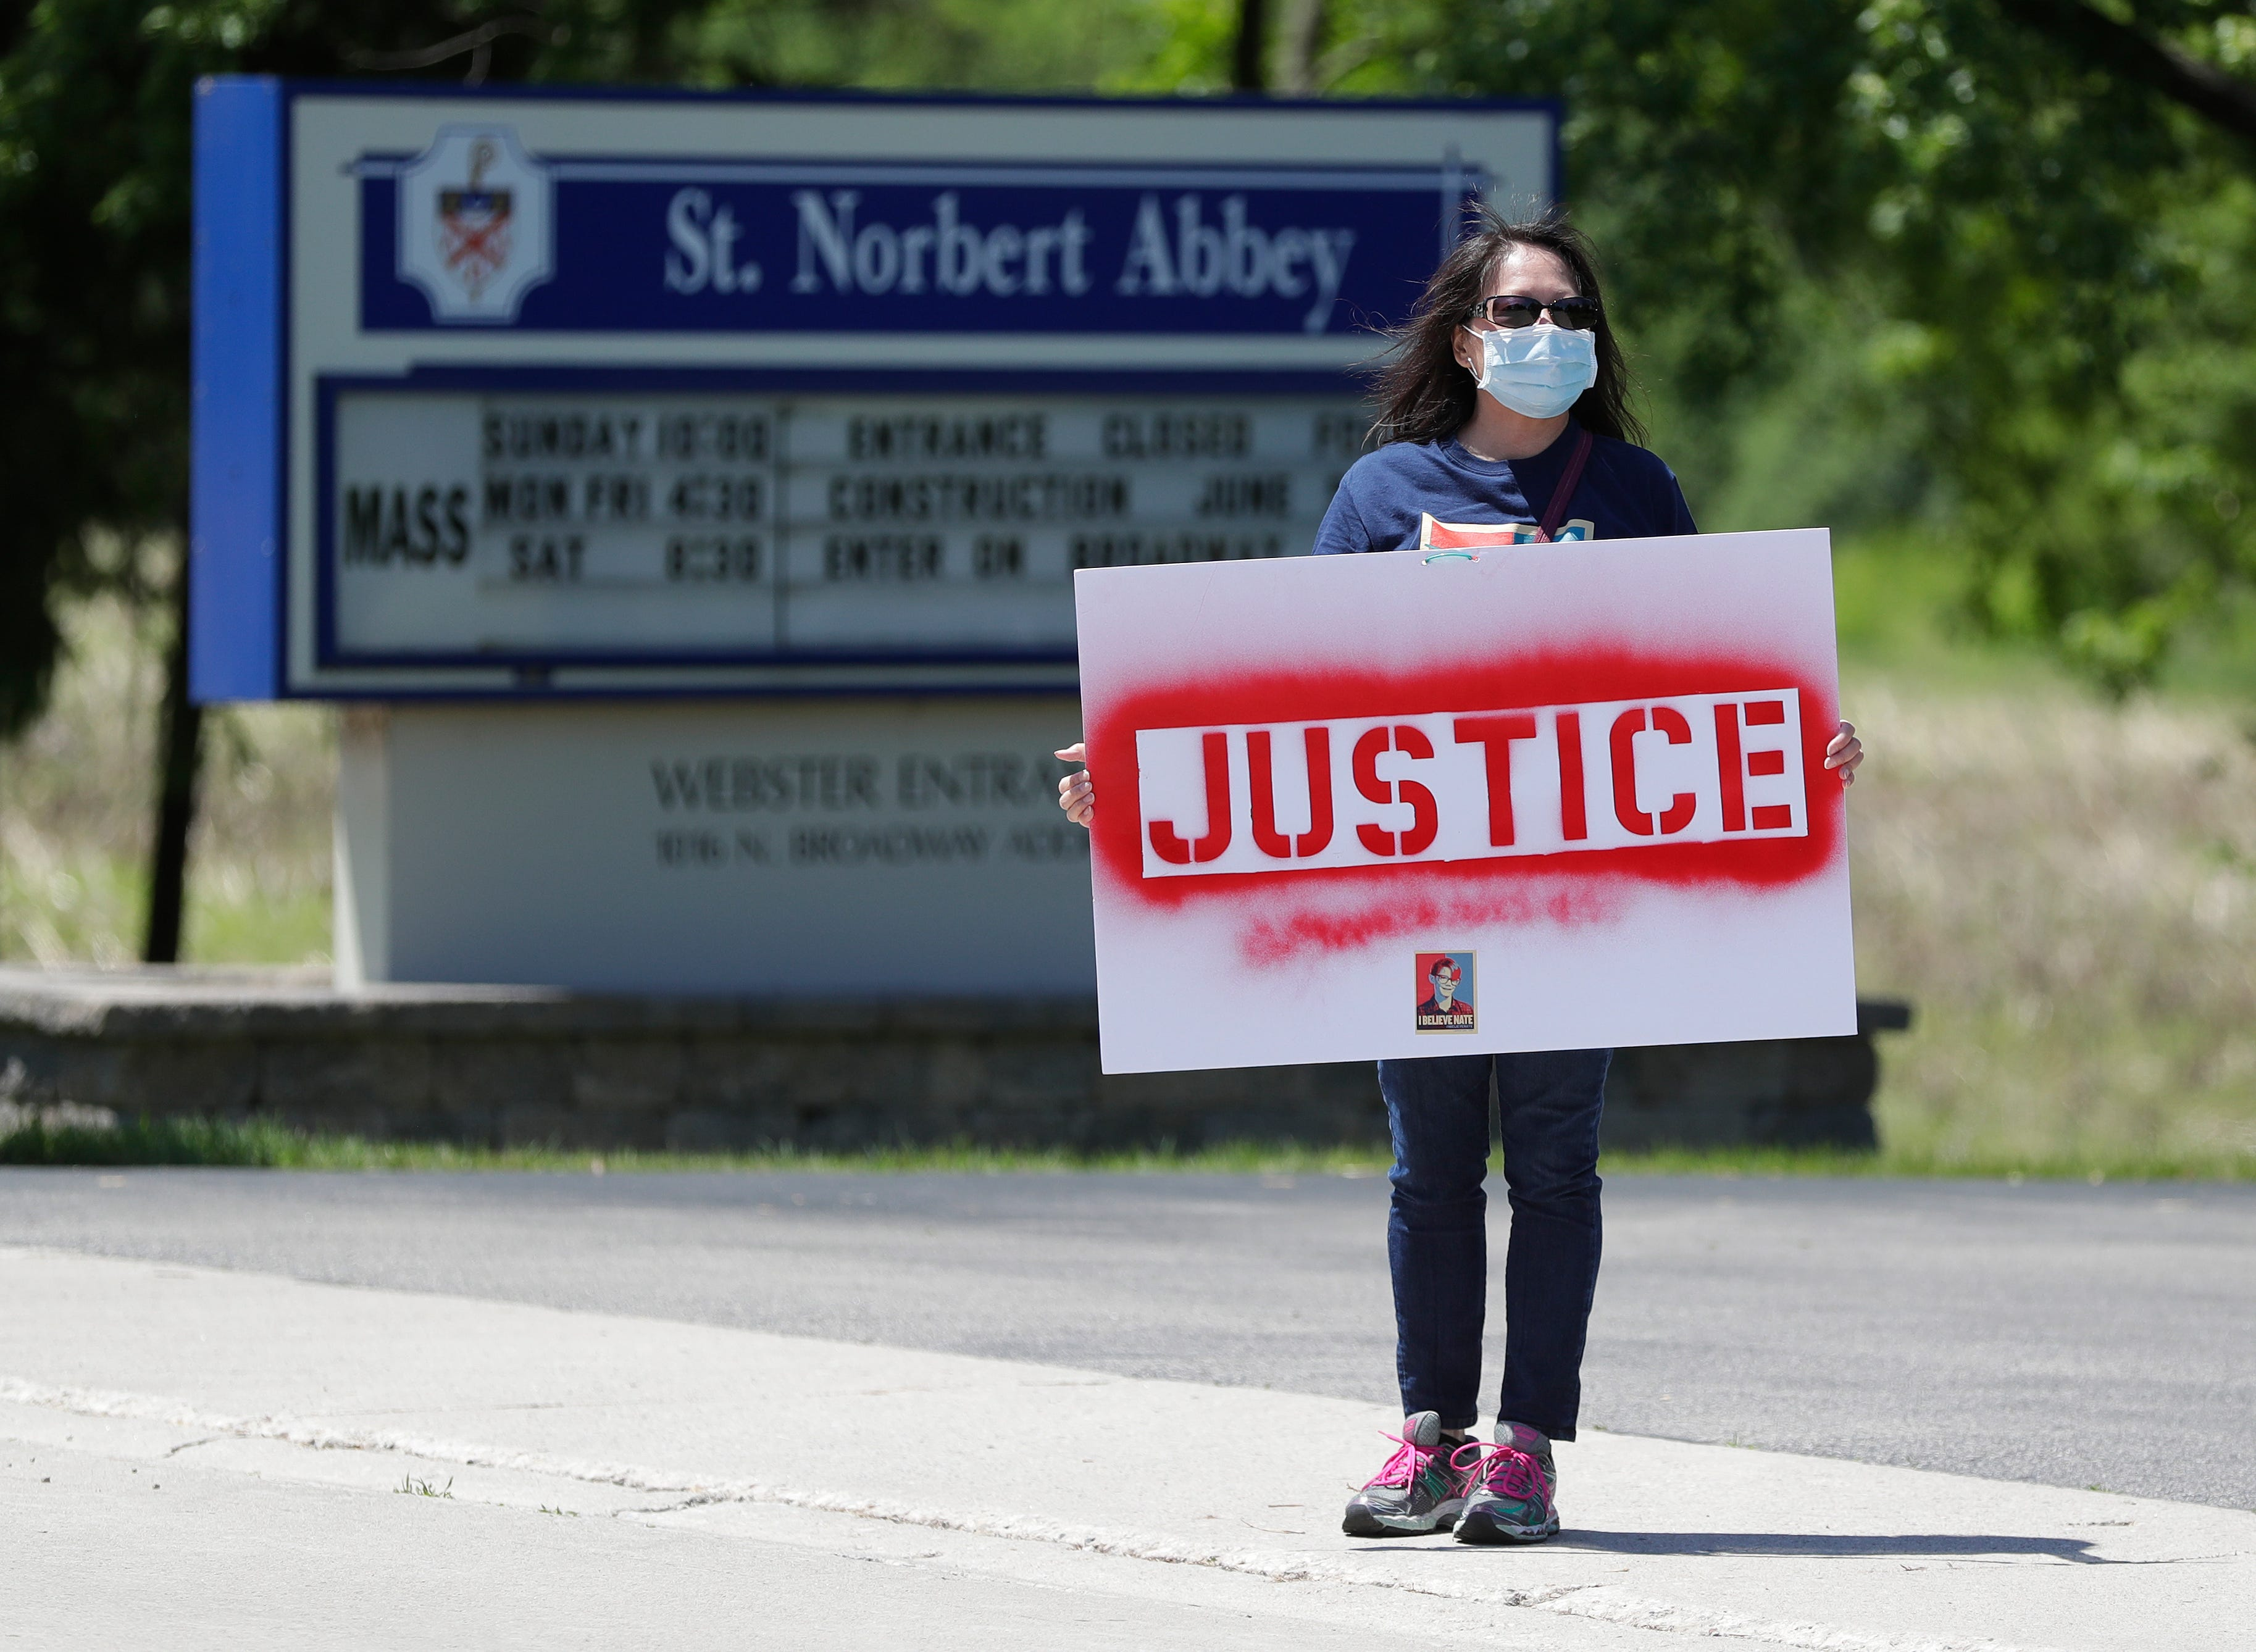 Emily Harrison, friend of Nate Lindstrom and Chicago resident, protests outside St. Norbert Abbey on June 6, 2020, at the De Pere-Allouez border. Lindstrom, 45, said three priests sexually abused him as a teen; he died by suicide in March 2020.